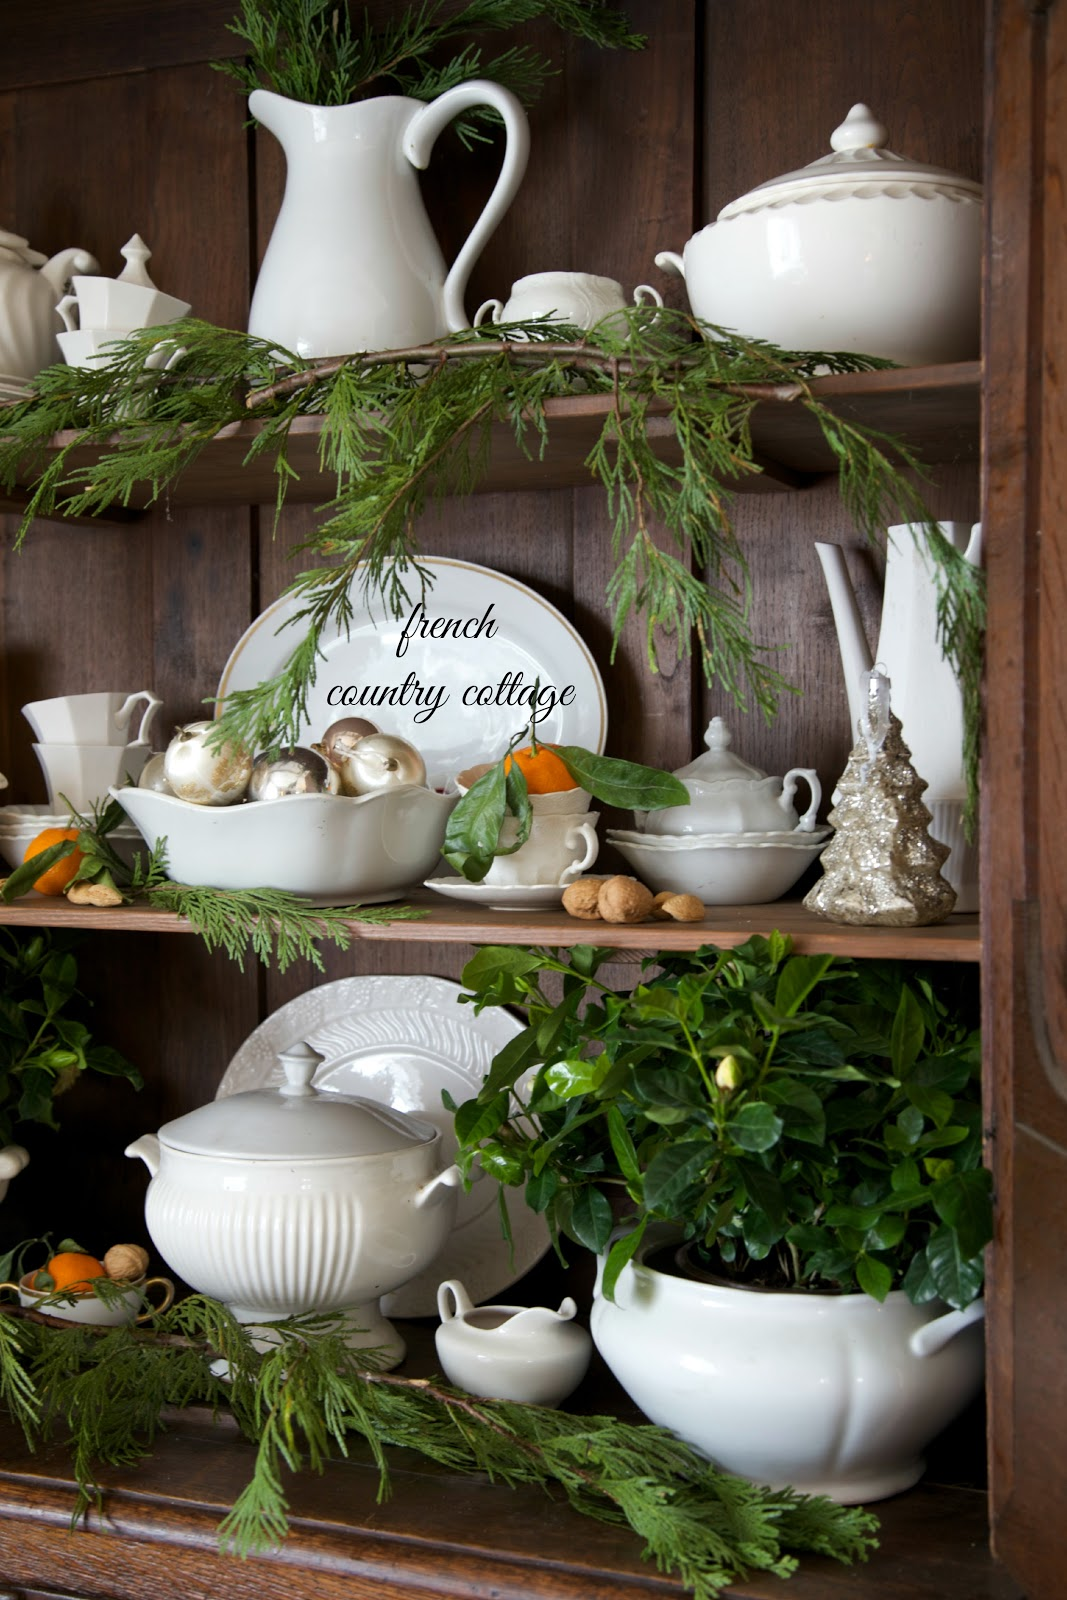 Courtney at french country cottage decorated the kitchen - Courtney At French Country Cottage Decorated The Kitchen 20